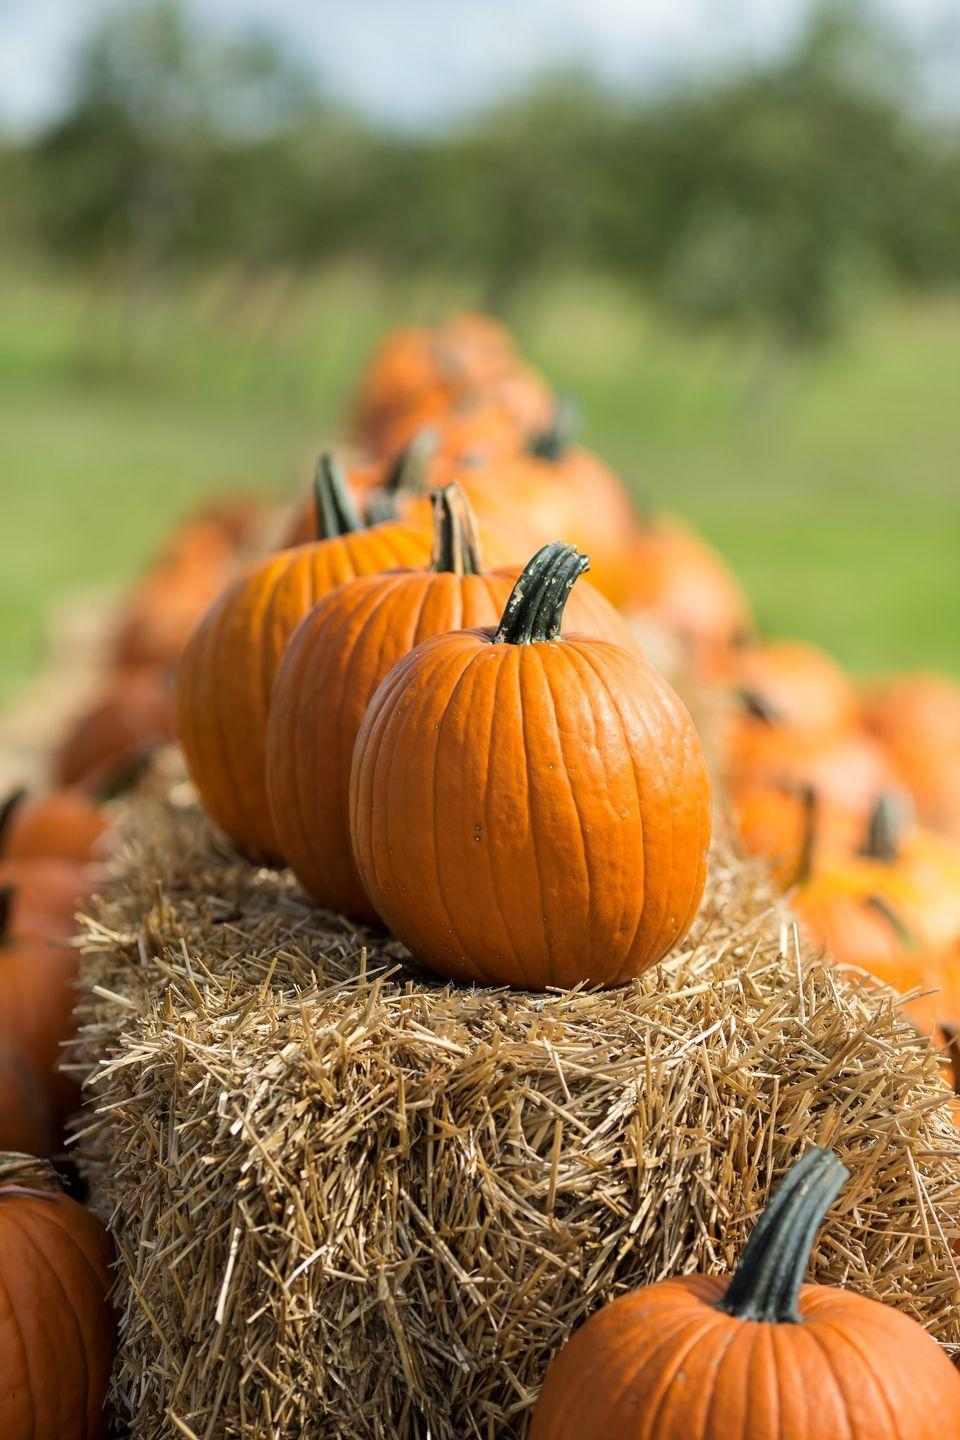 "<p>Visit <a href=""https://www.countryliving.com/life/travel/g21273436/pumpkin-farms-near-me/"" rel=""nofollow noopener"" target=""_blank"" data-ylk=""slk:your local pumpkin farm"" class=""link rapid-noclick-resp"">your local pumpkin farm</a> and pick up the perfect gourds to transform with the <a href=""https://www.countryliving.com/diy-crafts/g279/pumpkin-carving-ideas/"" rel=""nofollow noopener"" target=""_blank"" data-ylk=""slk:best pumpkin carving ideas"" class=""link rapid-noclick-resp"">best pumpkin carving ideas</a>. </p><p><a class=""link rapid-noclick-resp"" href=""https://www.amazon.com/Halloween-Haunters-Ultimate-Professional-Lanterns/dp/B074XJHZX7/?tag=syn-yahoo-20&ascsubtag=%5Bartid%7C2139.g.34440360%5Bsrc%7Cyahoo-us"" rel=""nofollow noopener"" target=""_blank"" data-ylk=""slk:SHOP PUMPKIN CARVING KIT"">SHOP PUMPKIN CARVING KIT</a></p>"